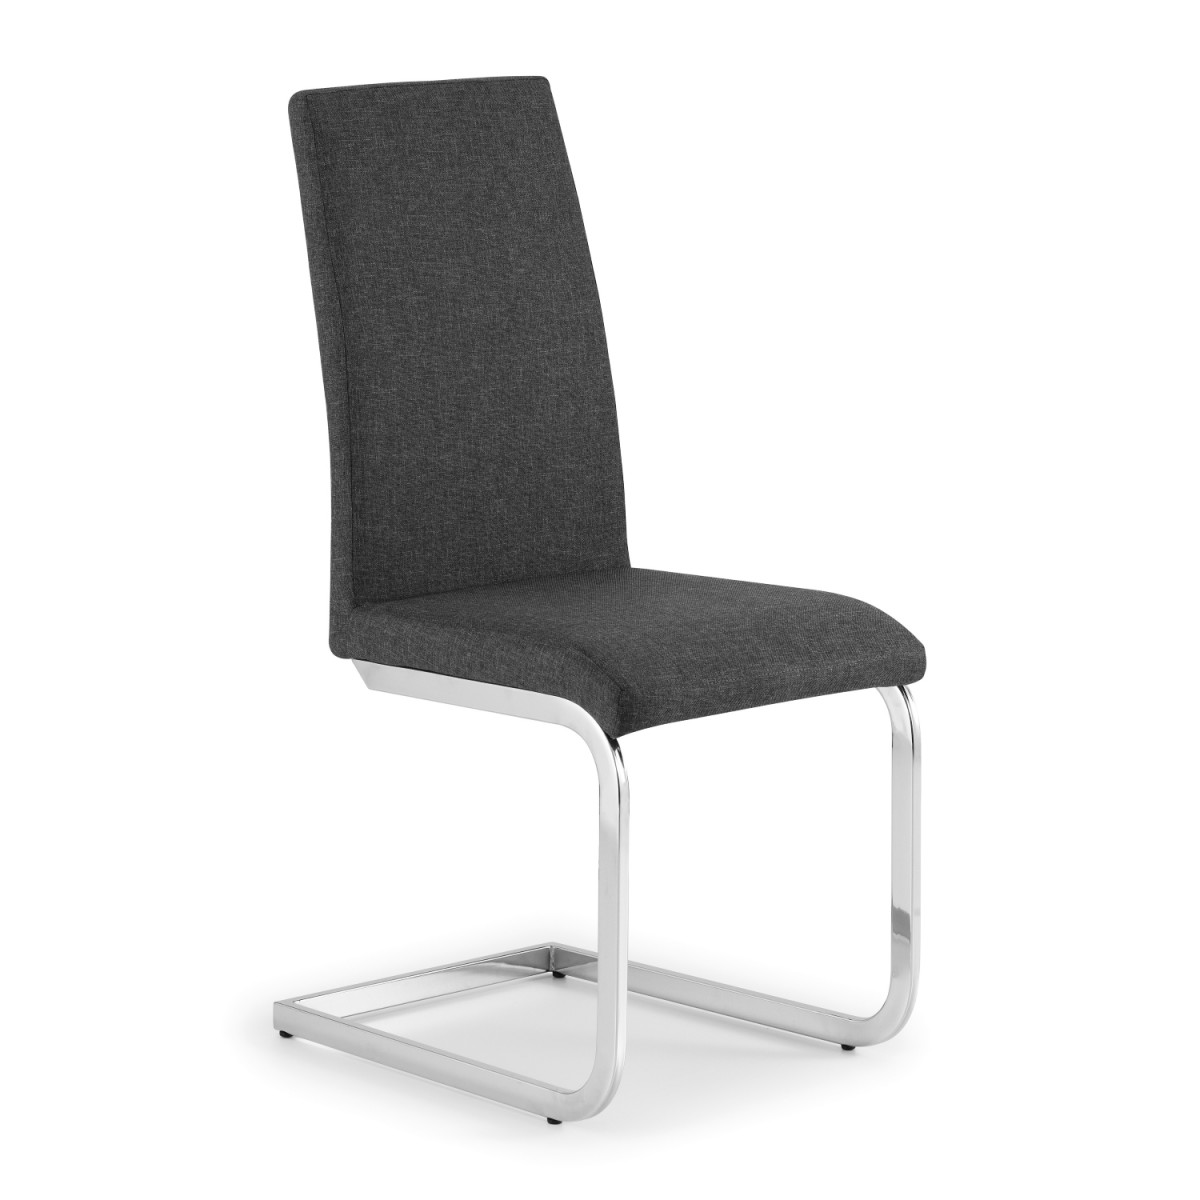 https://www.firstfurniture.co.uk/pub/media/catalog/product/j/u/julian_bowen_roma_dining_chair_ROM101_1-1200x1200.jpg